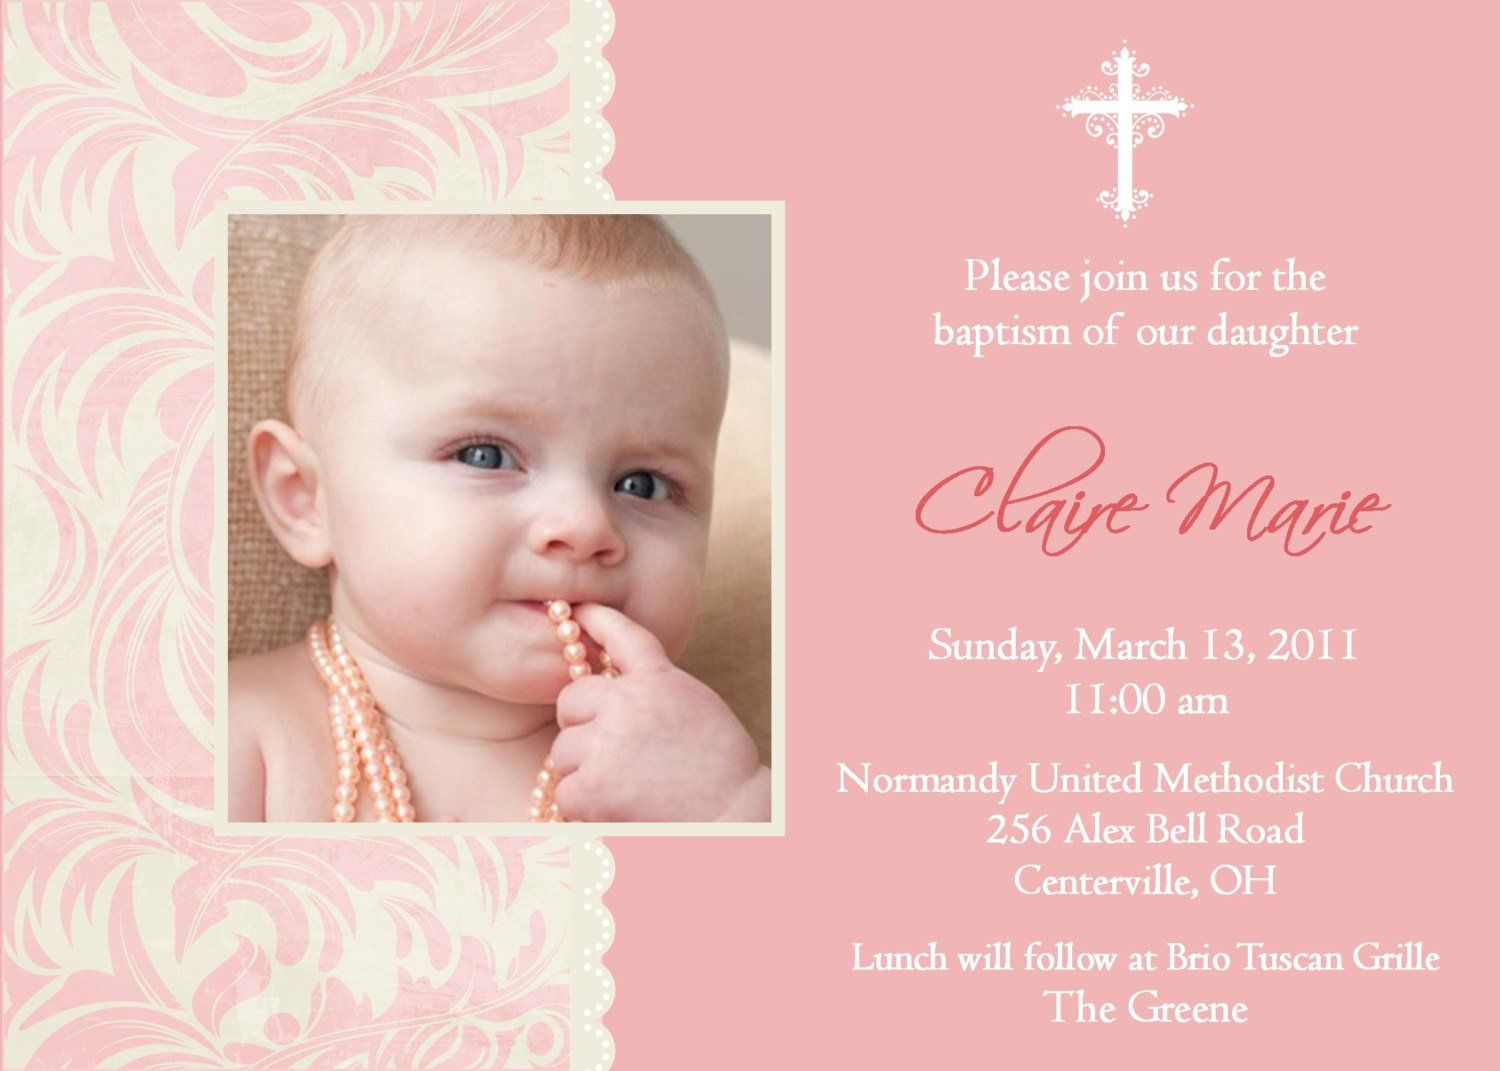 Best font for christening invitation invitations pinterest wording sample ideas for baptism invitations stopboris Gallery